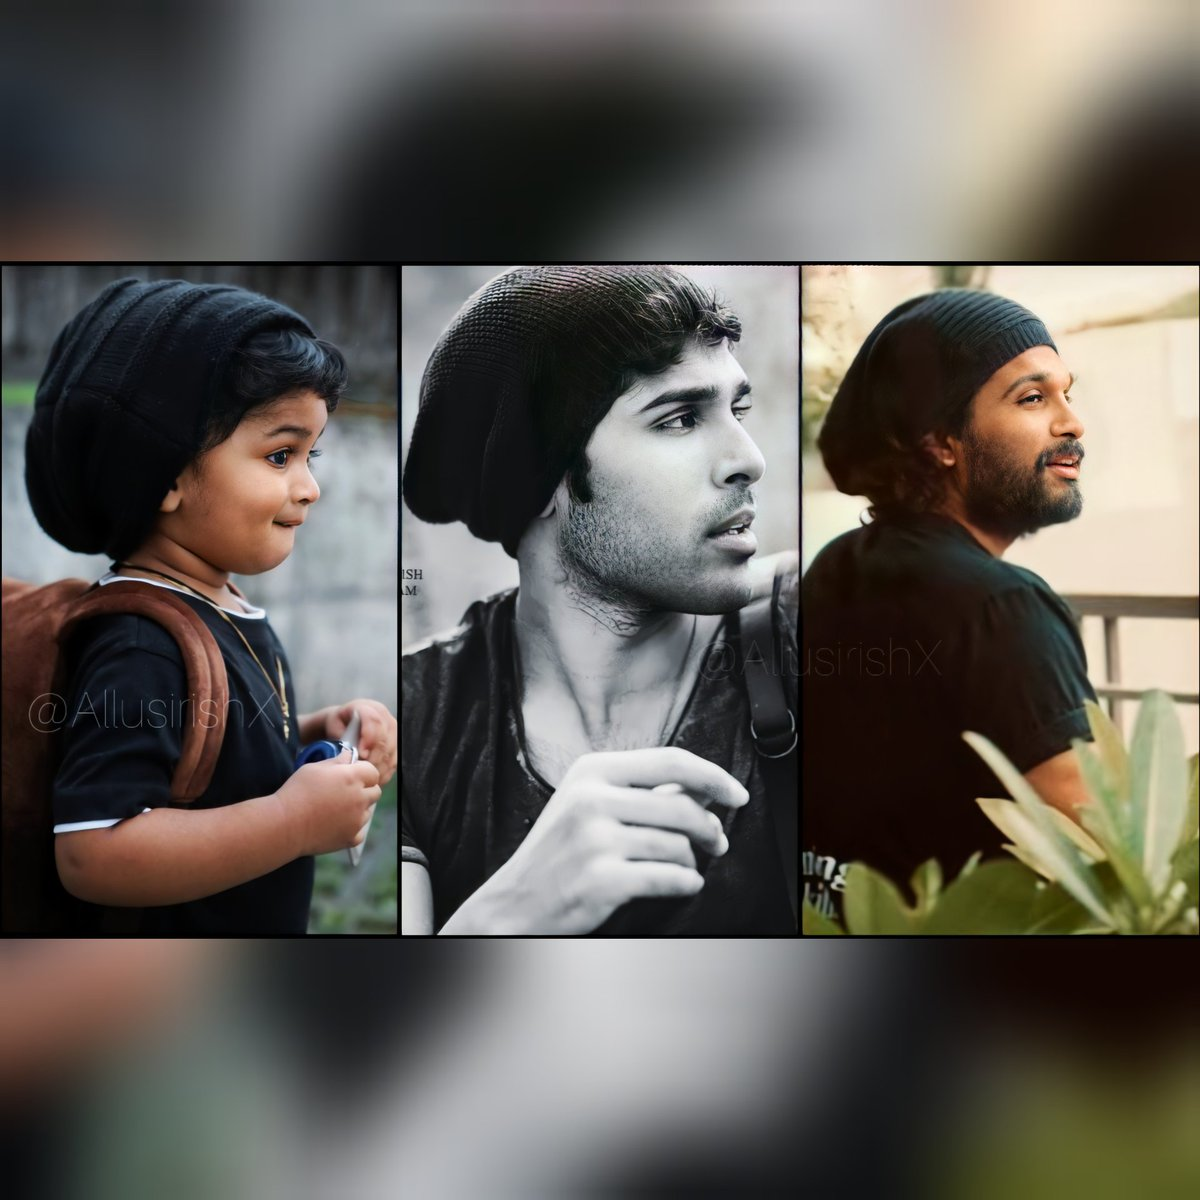 Thank you so much for the collage @Anuritha3 😊😊😊 @tejkrovi @AlluSirish @alluarjun   #AlluArjun #AlluSirish #TejKrovi #IndianStyleIconAlluArjun #college #Trending #Recreation #cosplay https://t.co/Sc3UY8Qemx